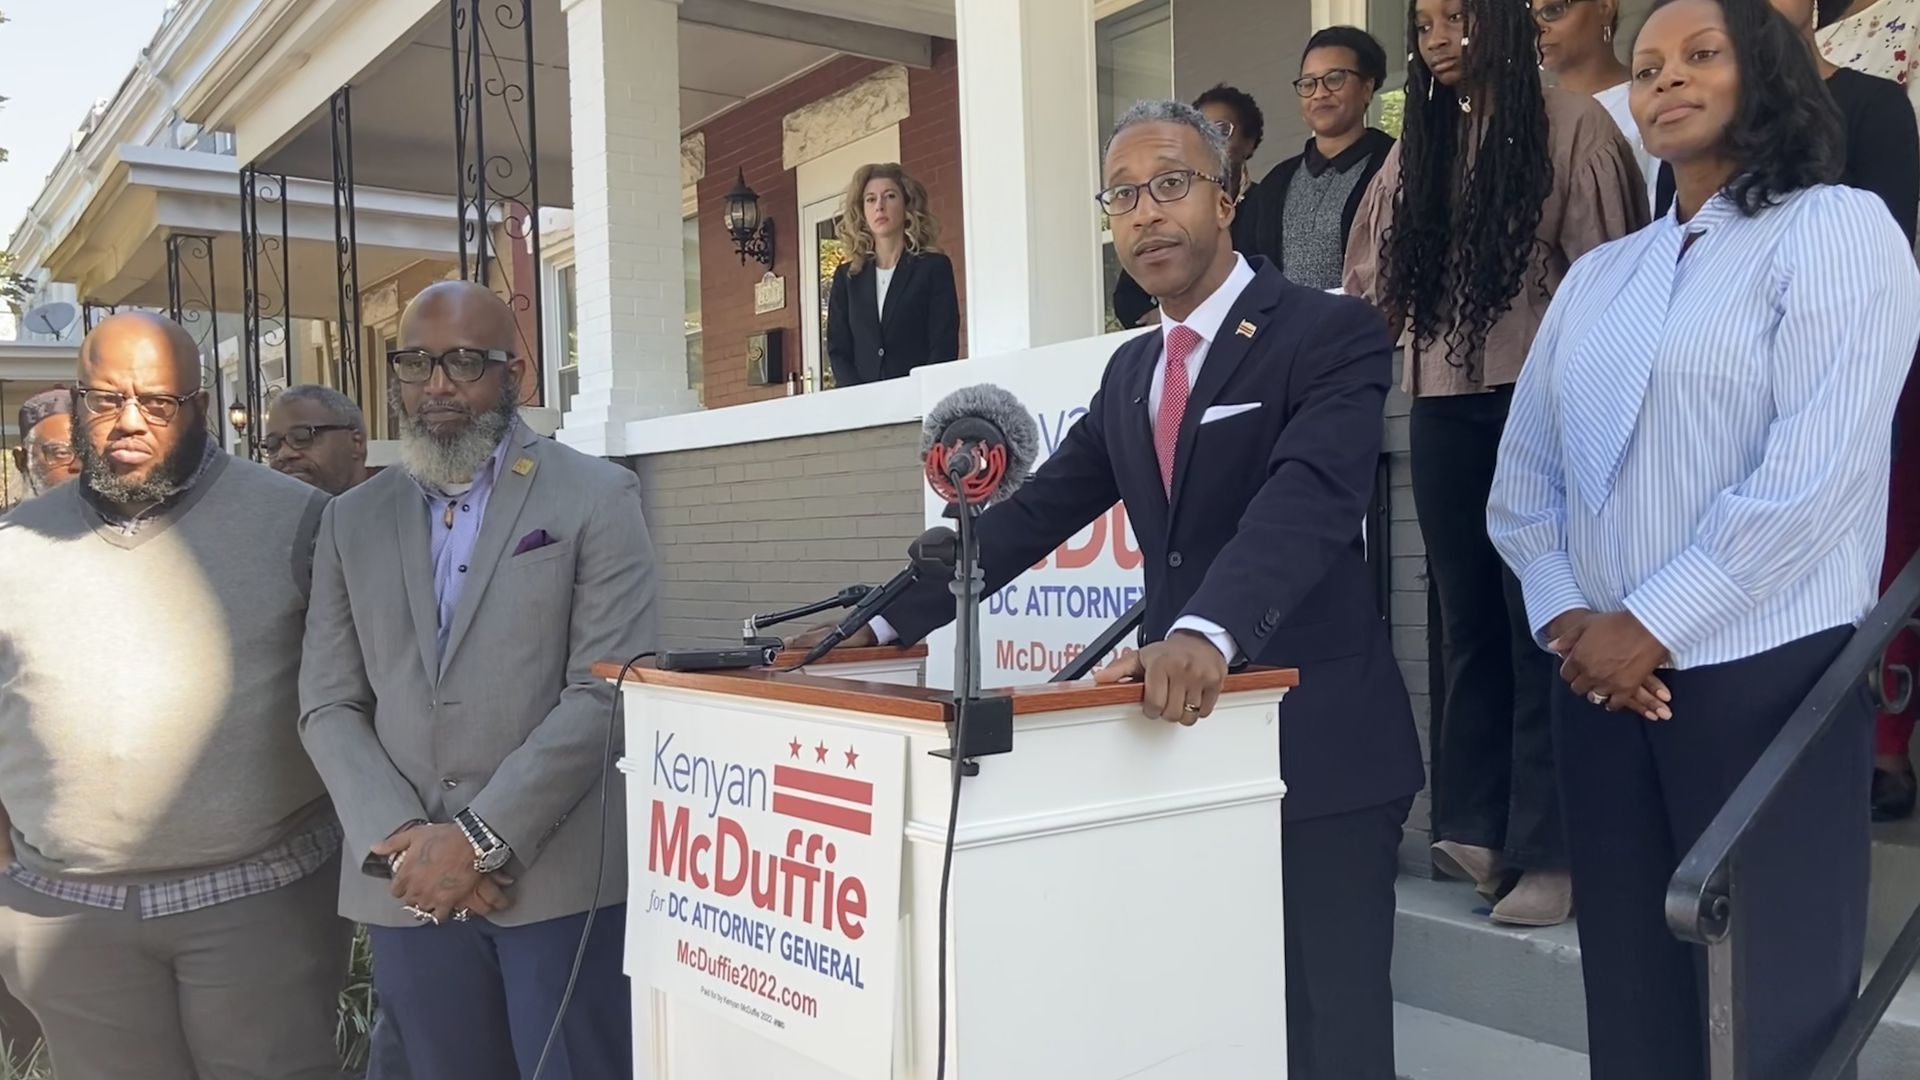 Council member Kenyan McDuffie speaks before a podium surrounded by family and friends.